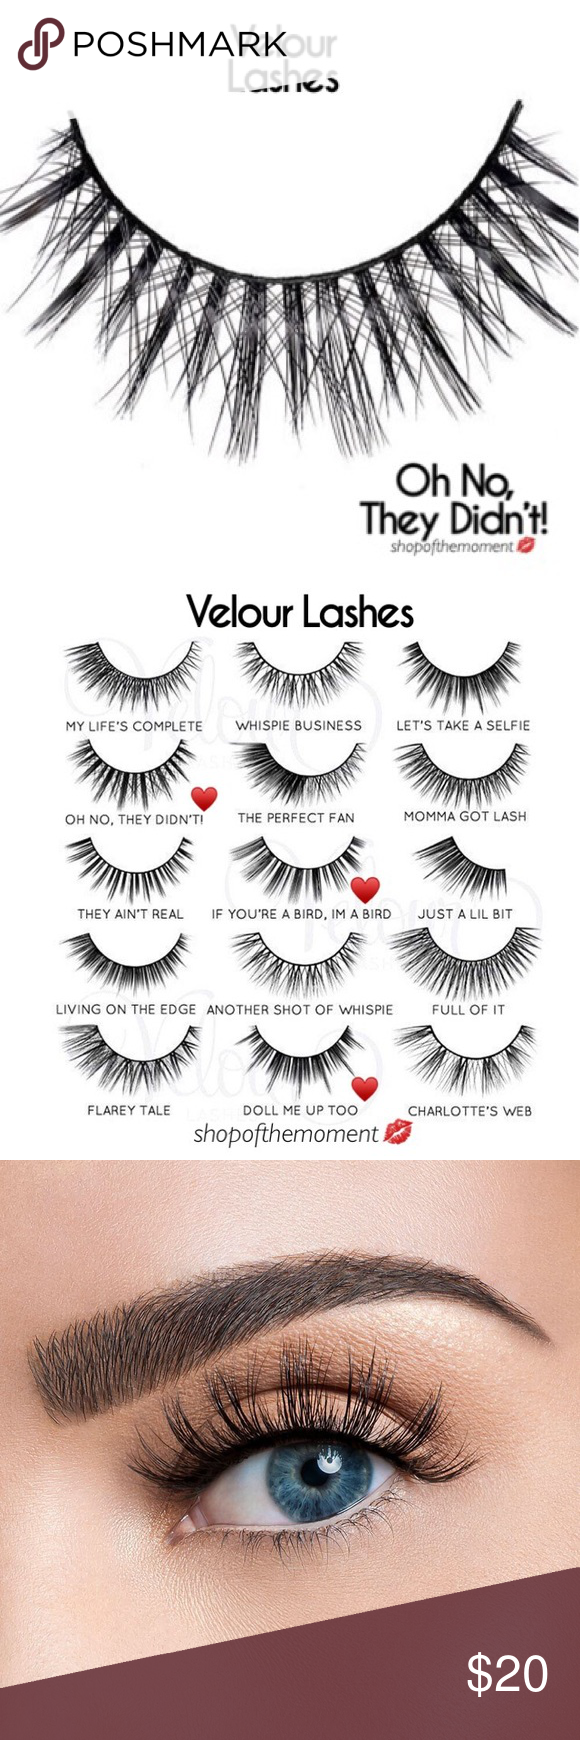 14be971451f Sephora ღ Velour Lashes ღ Oh No They Didn't! Velour Lashes Sephora Exclusive  Oh No, They Didn't! Brand New in Box 👁👁👁👁👁👁👁👁👁👁👁👁 Boost your  lash ...